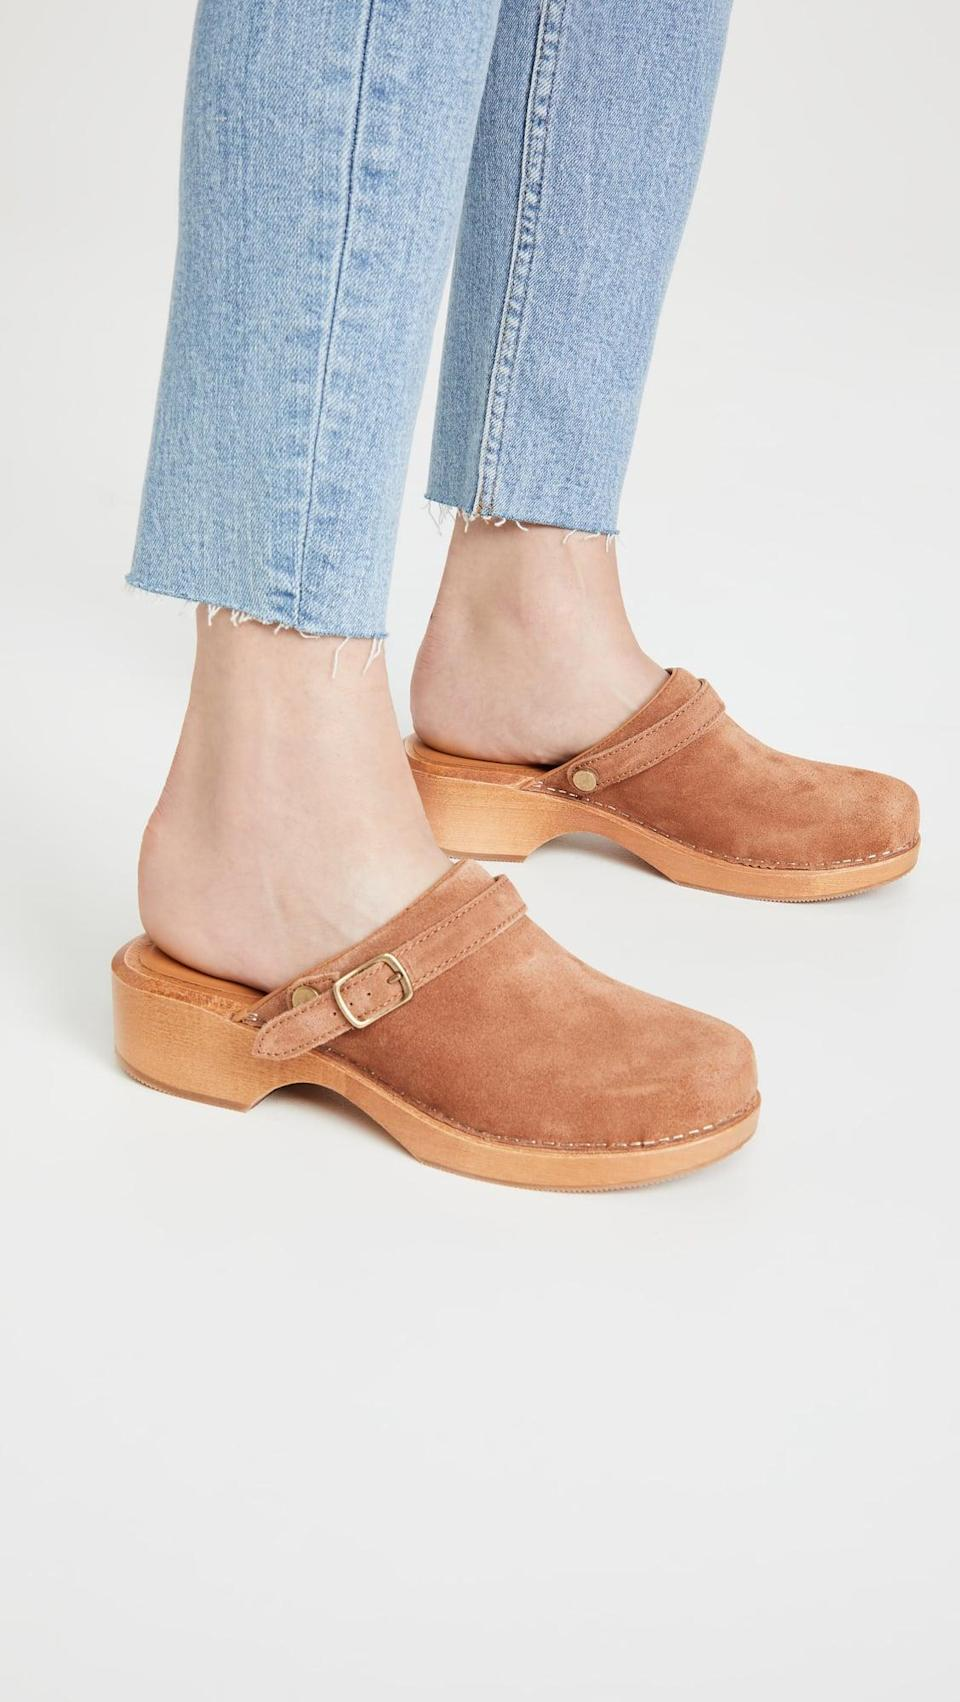 <p>We love the shade of these <span>RE/DONE 70's Classic Clogs</span> ($415). The brown suede would look perfect with light wash jeans.</p>